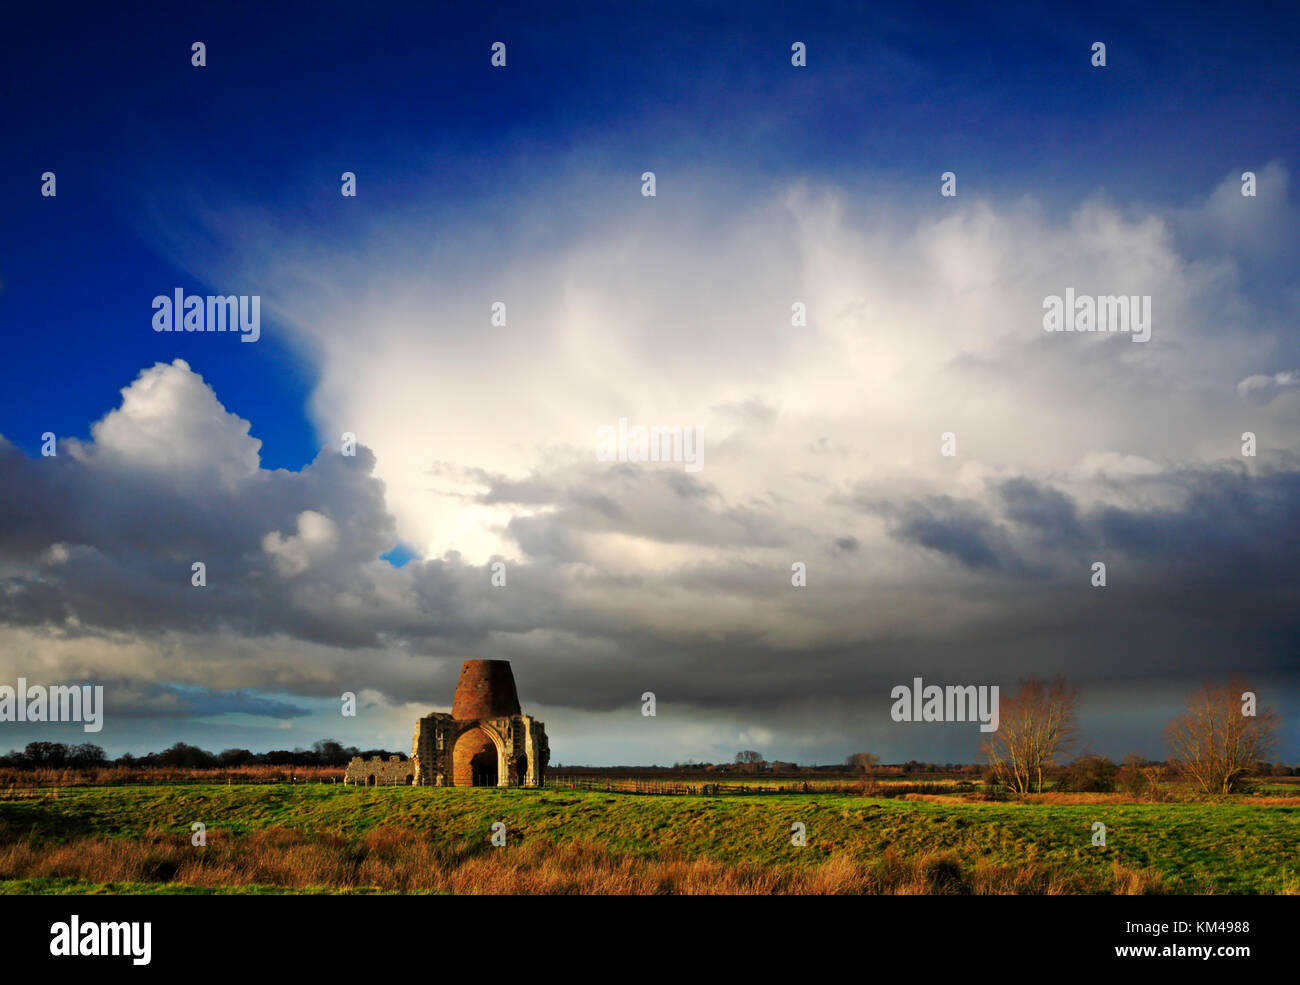 A view of heavy shower clouds over the Ruins of St Benet's Abbey gatehouse and drainage mill at Horning, Norfolk, - Stock Image